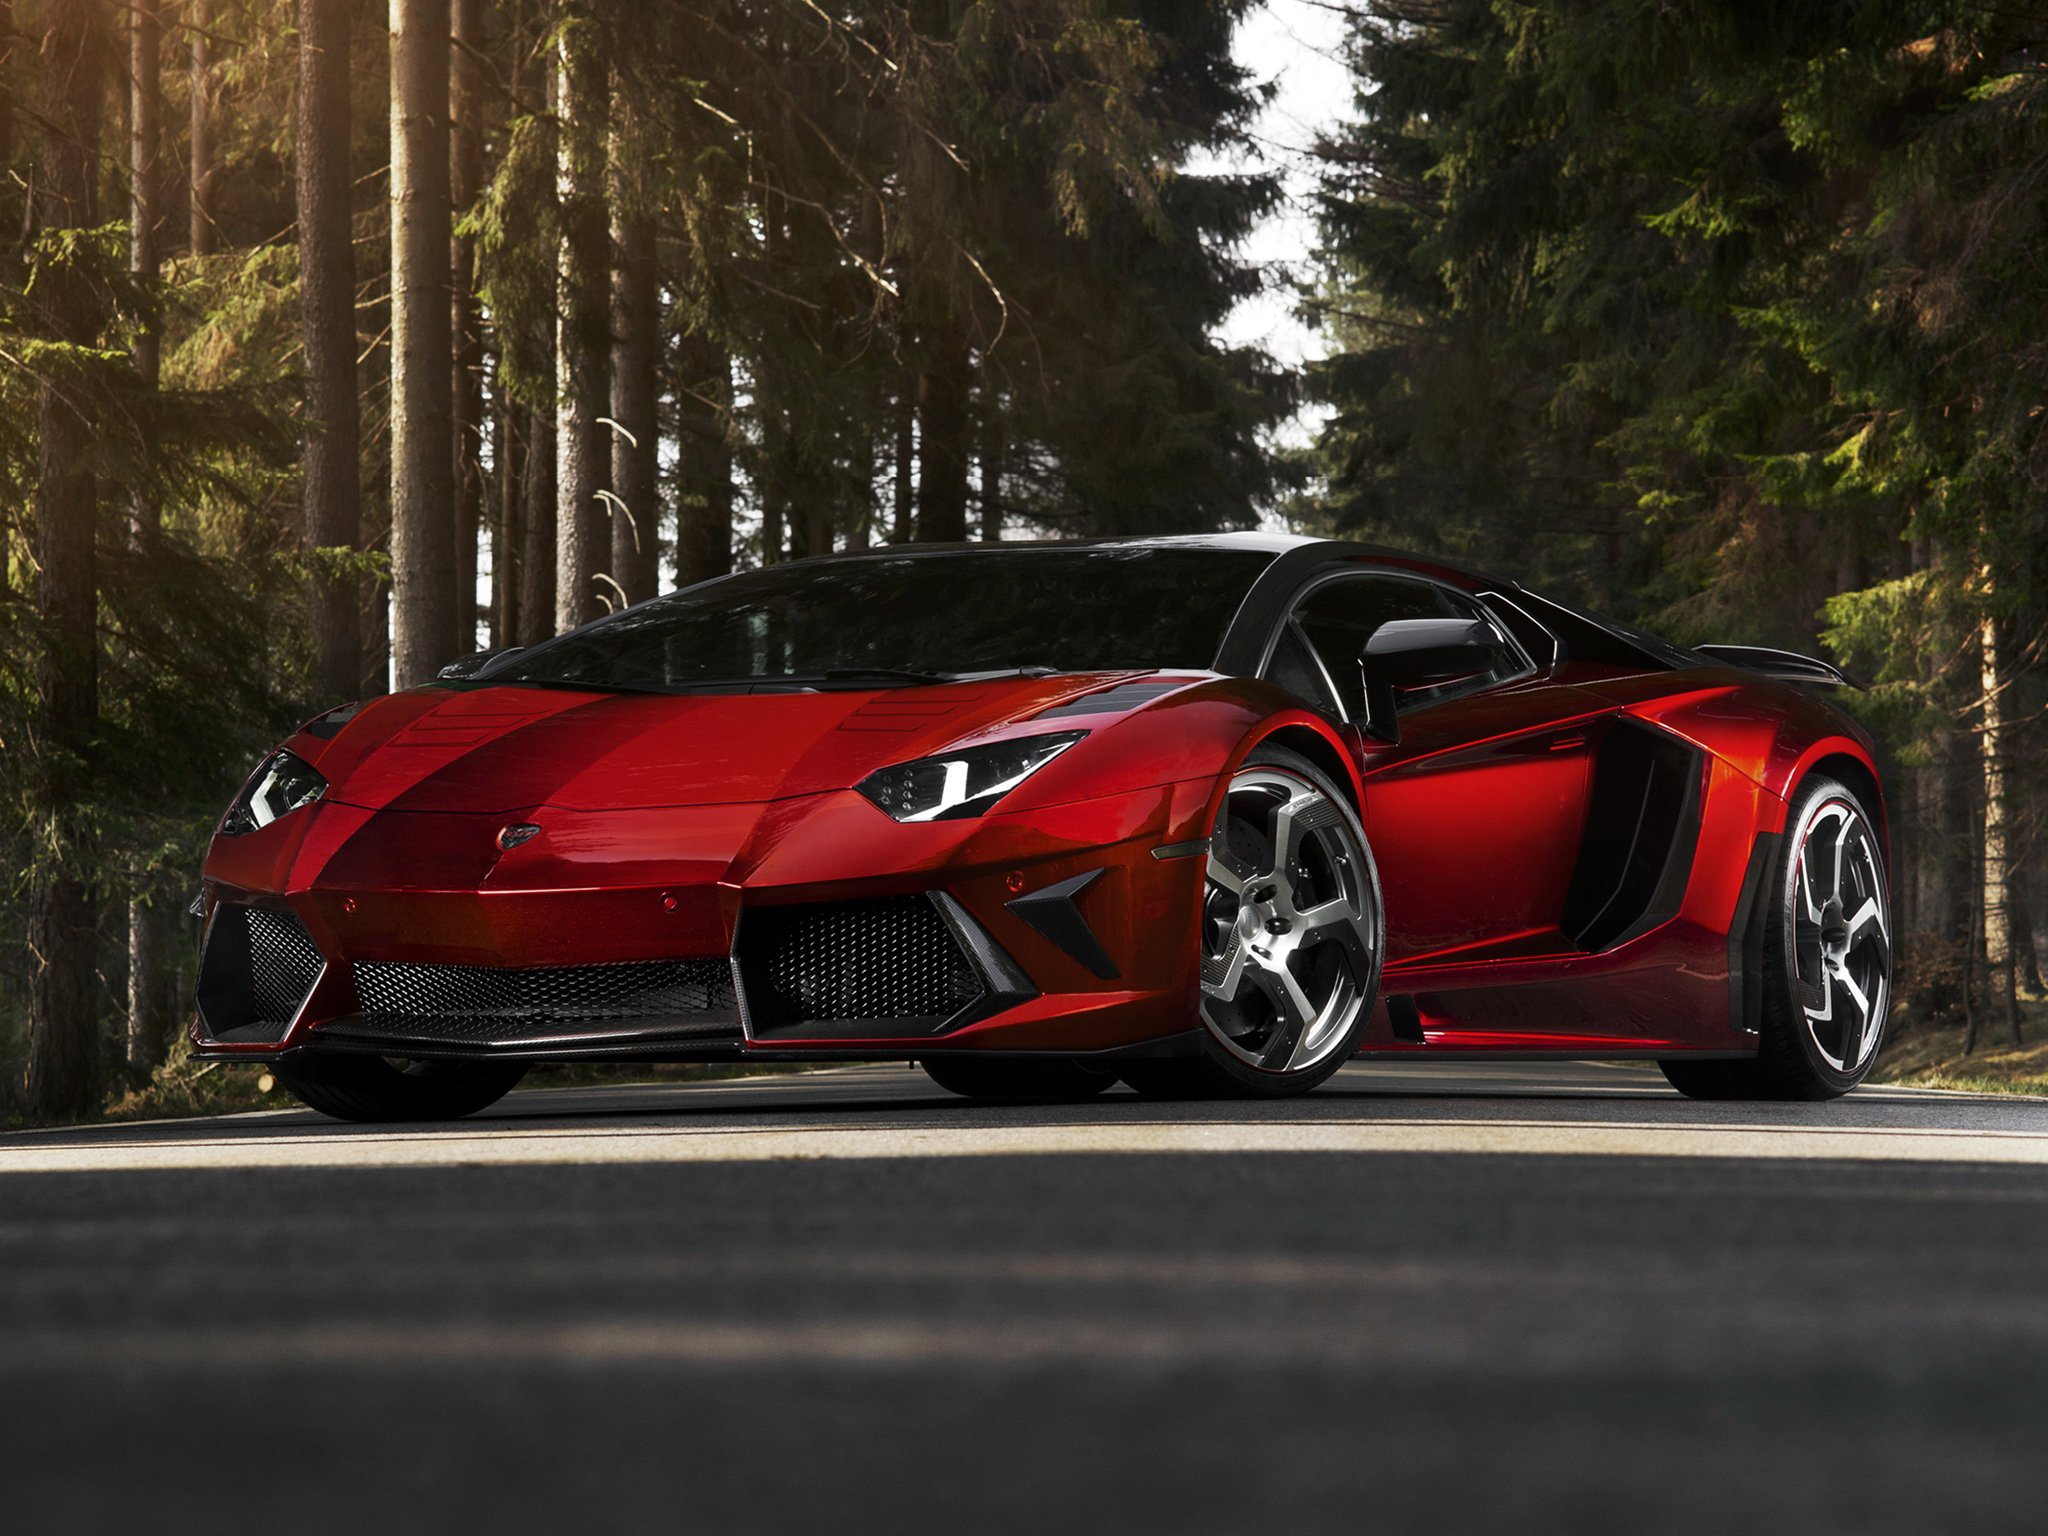 Black Wallpaper Hd Mansory Lamborghini Aventador Lp700 4 Cars Modified